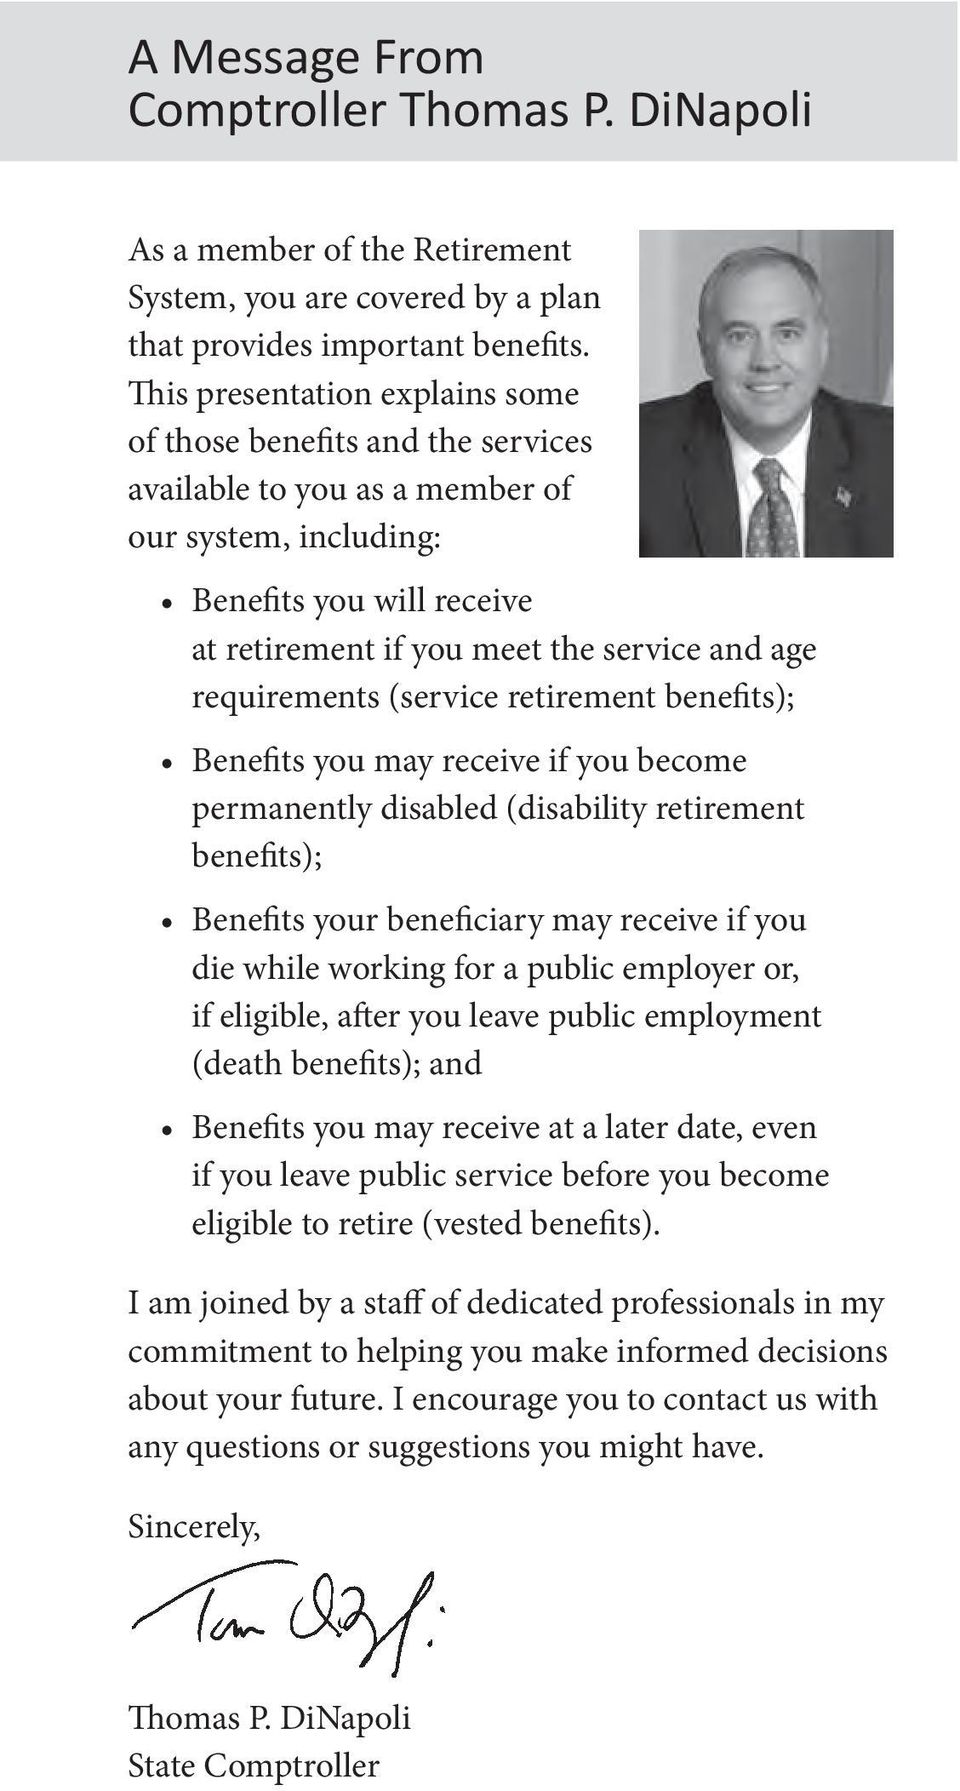 requirements (service retirement benefits); Benefits you may receive if you become permanently disabled (disability retirement benefits); Benefits your beneficiary may receive if you die while